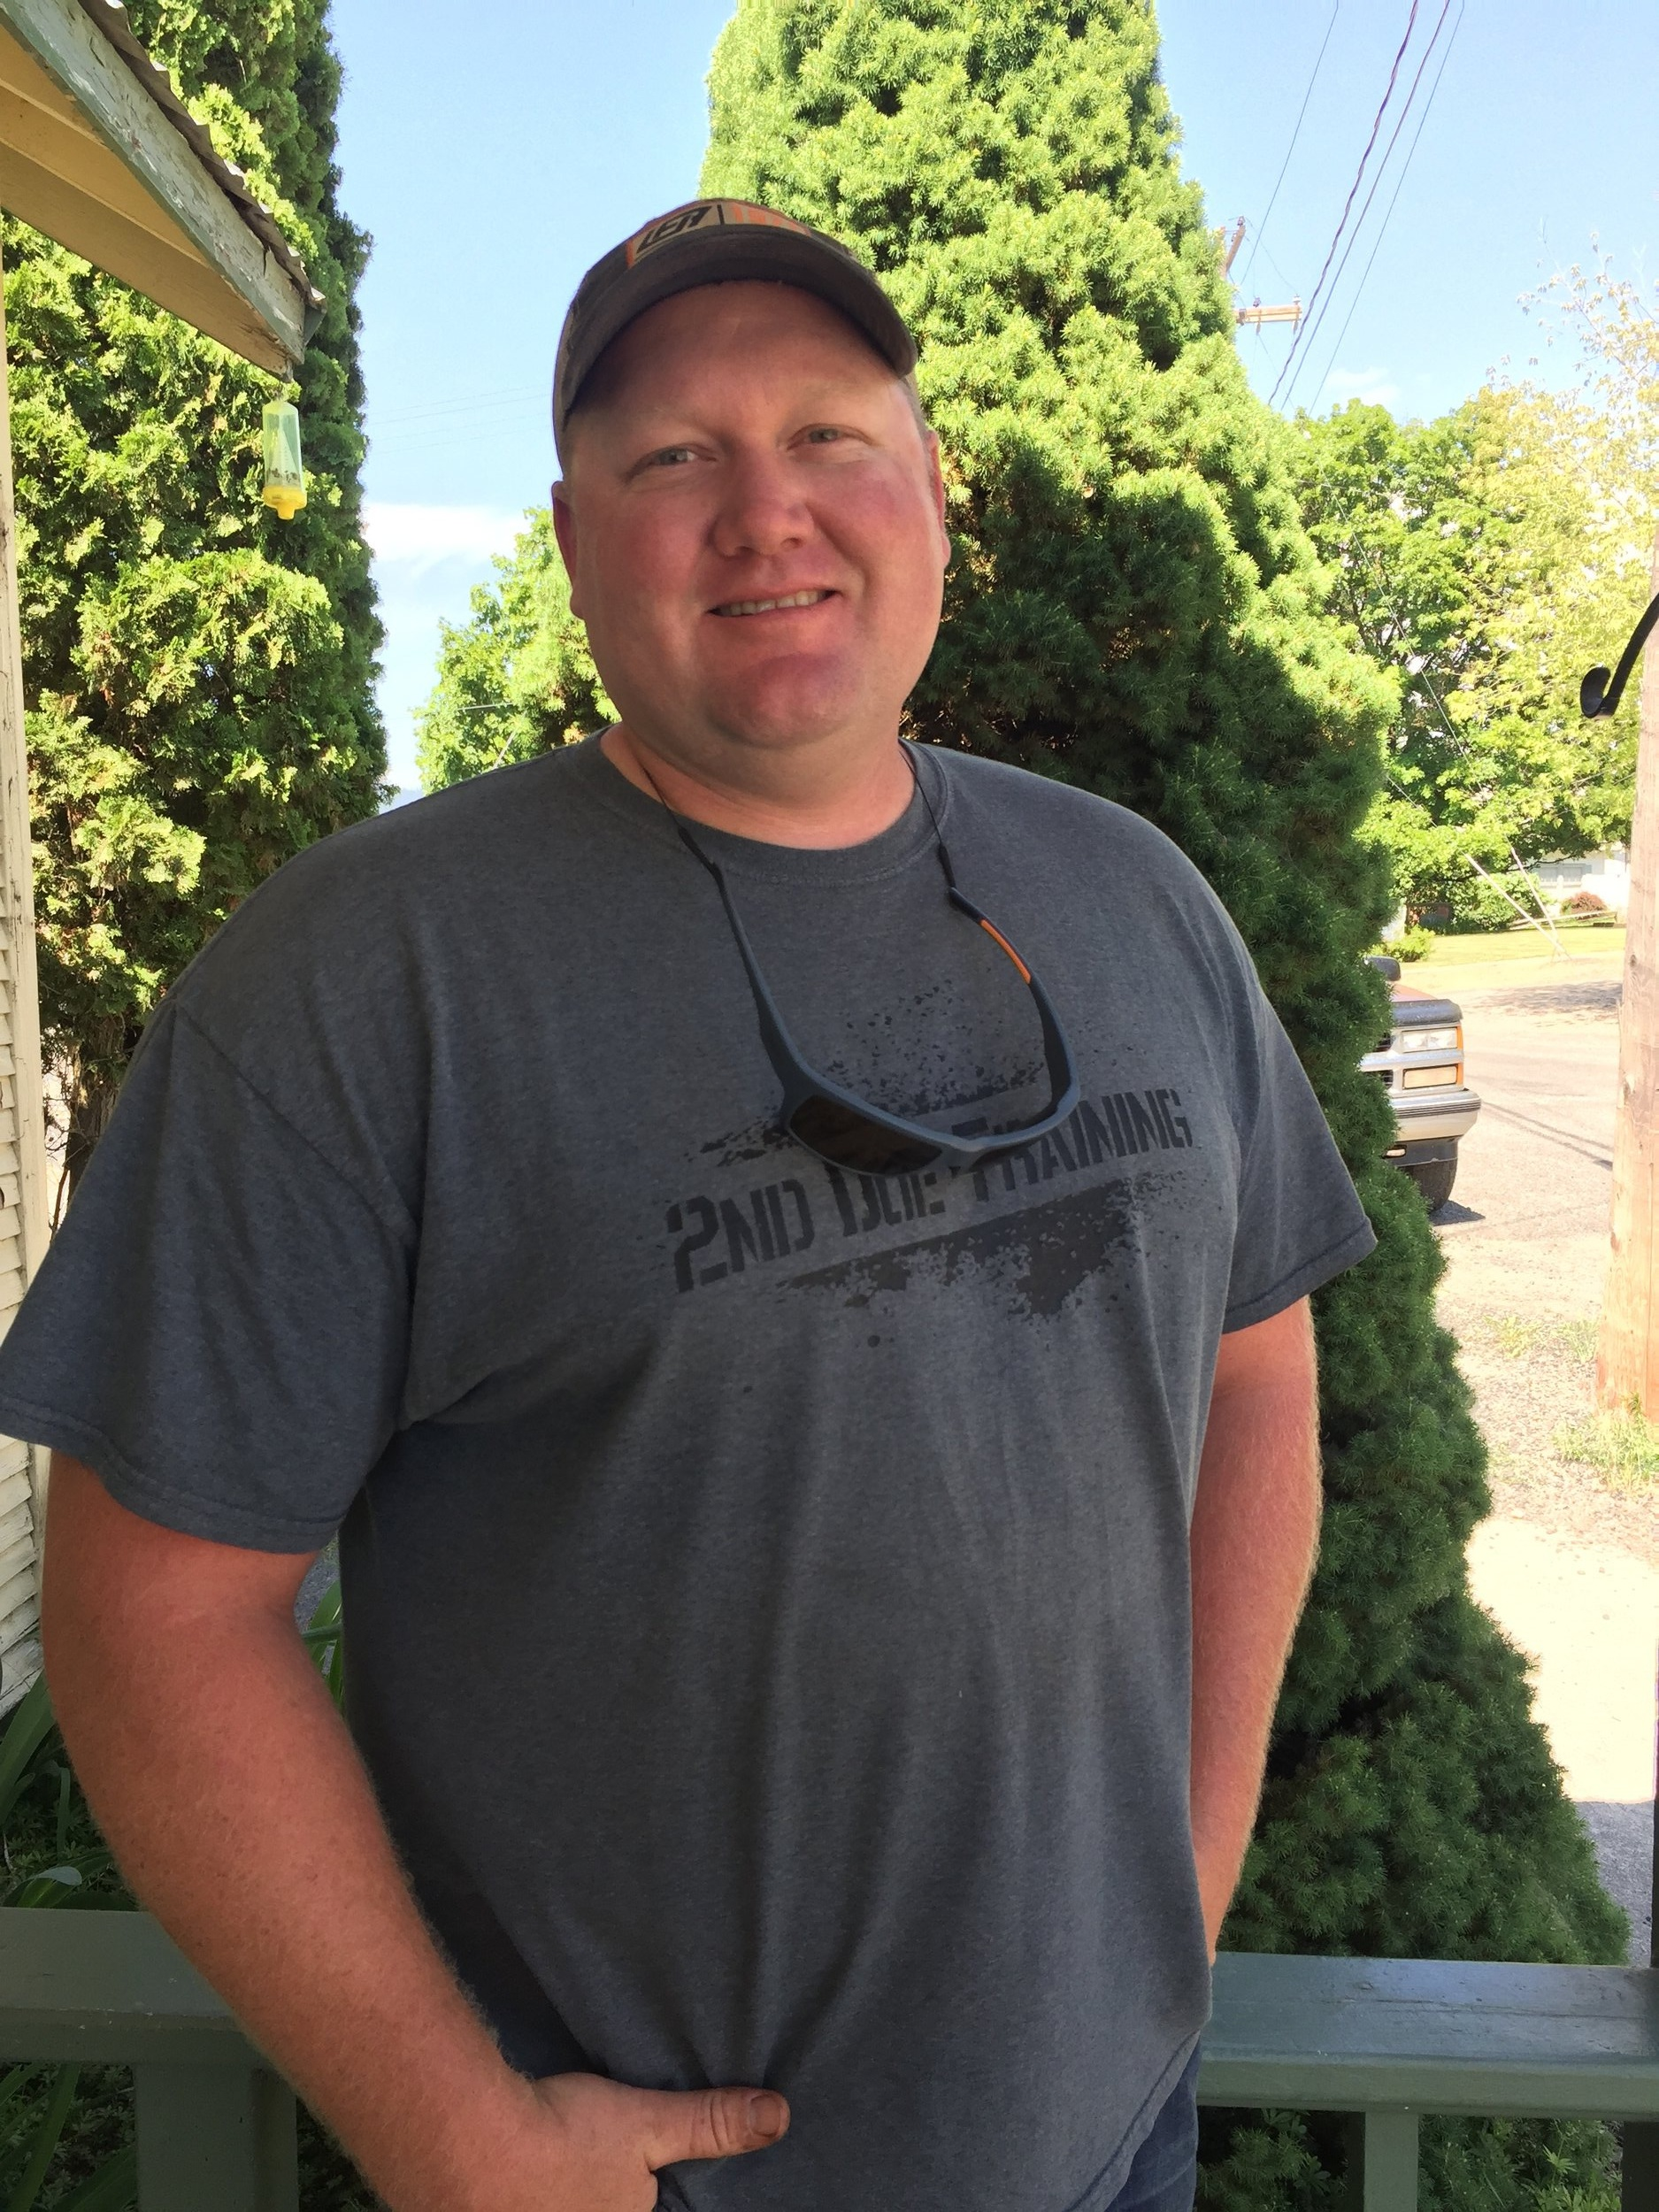 Wes Rice - Public Works Supervisor - PublicWorks@CityofHarrison.orgFor a water or sewer emergency please contact Wes at: 208-582-4096